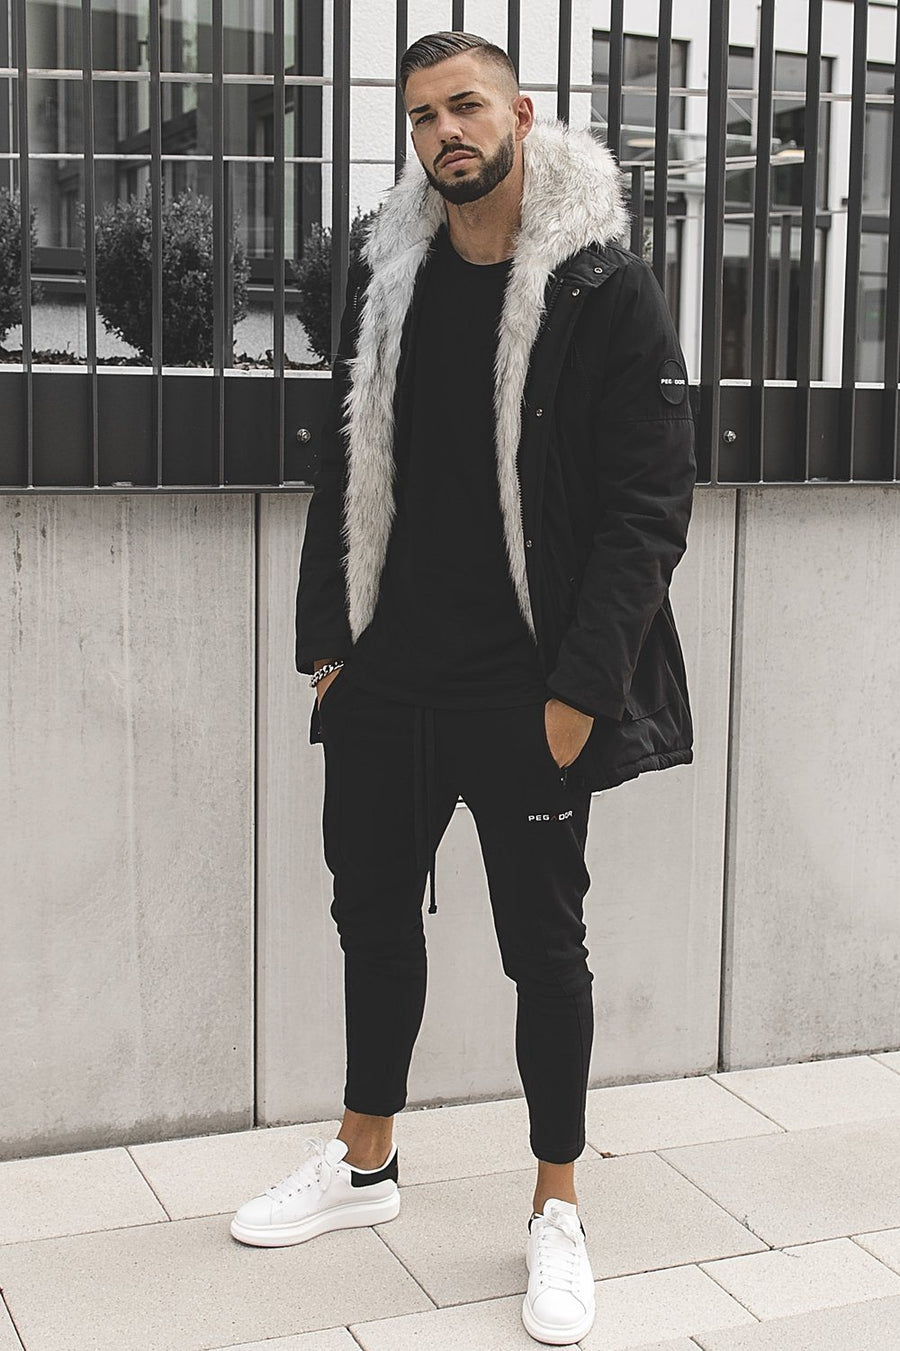 GTL PEGADOR - Arctic Parka Black & White Fur - PEGADOR - Dominate the Hype